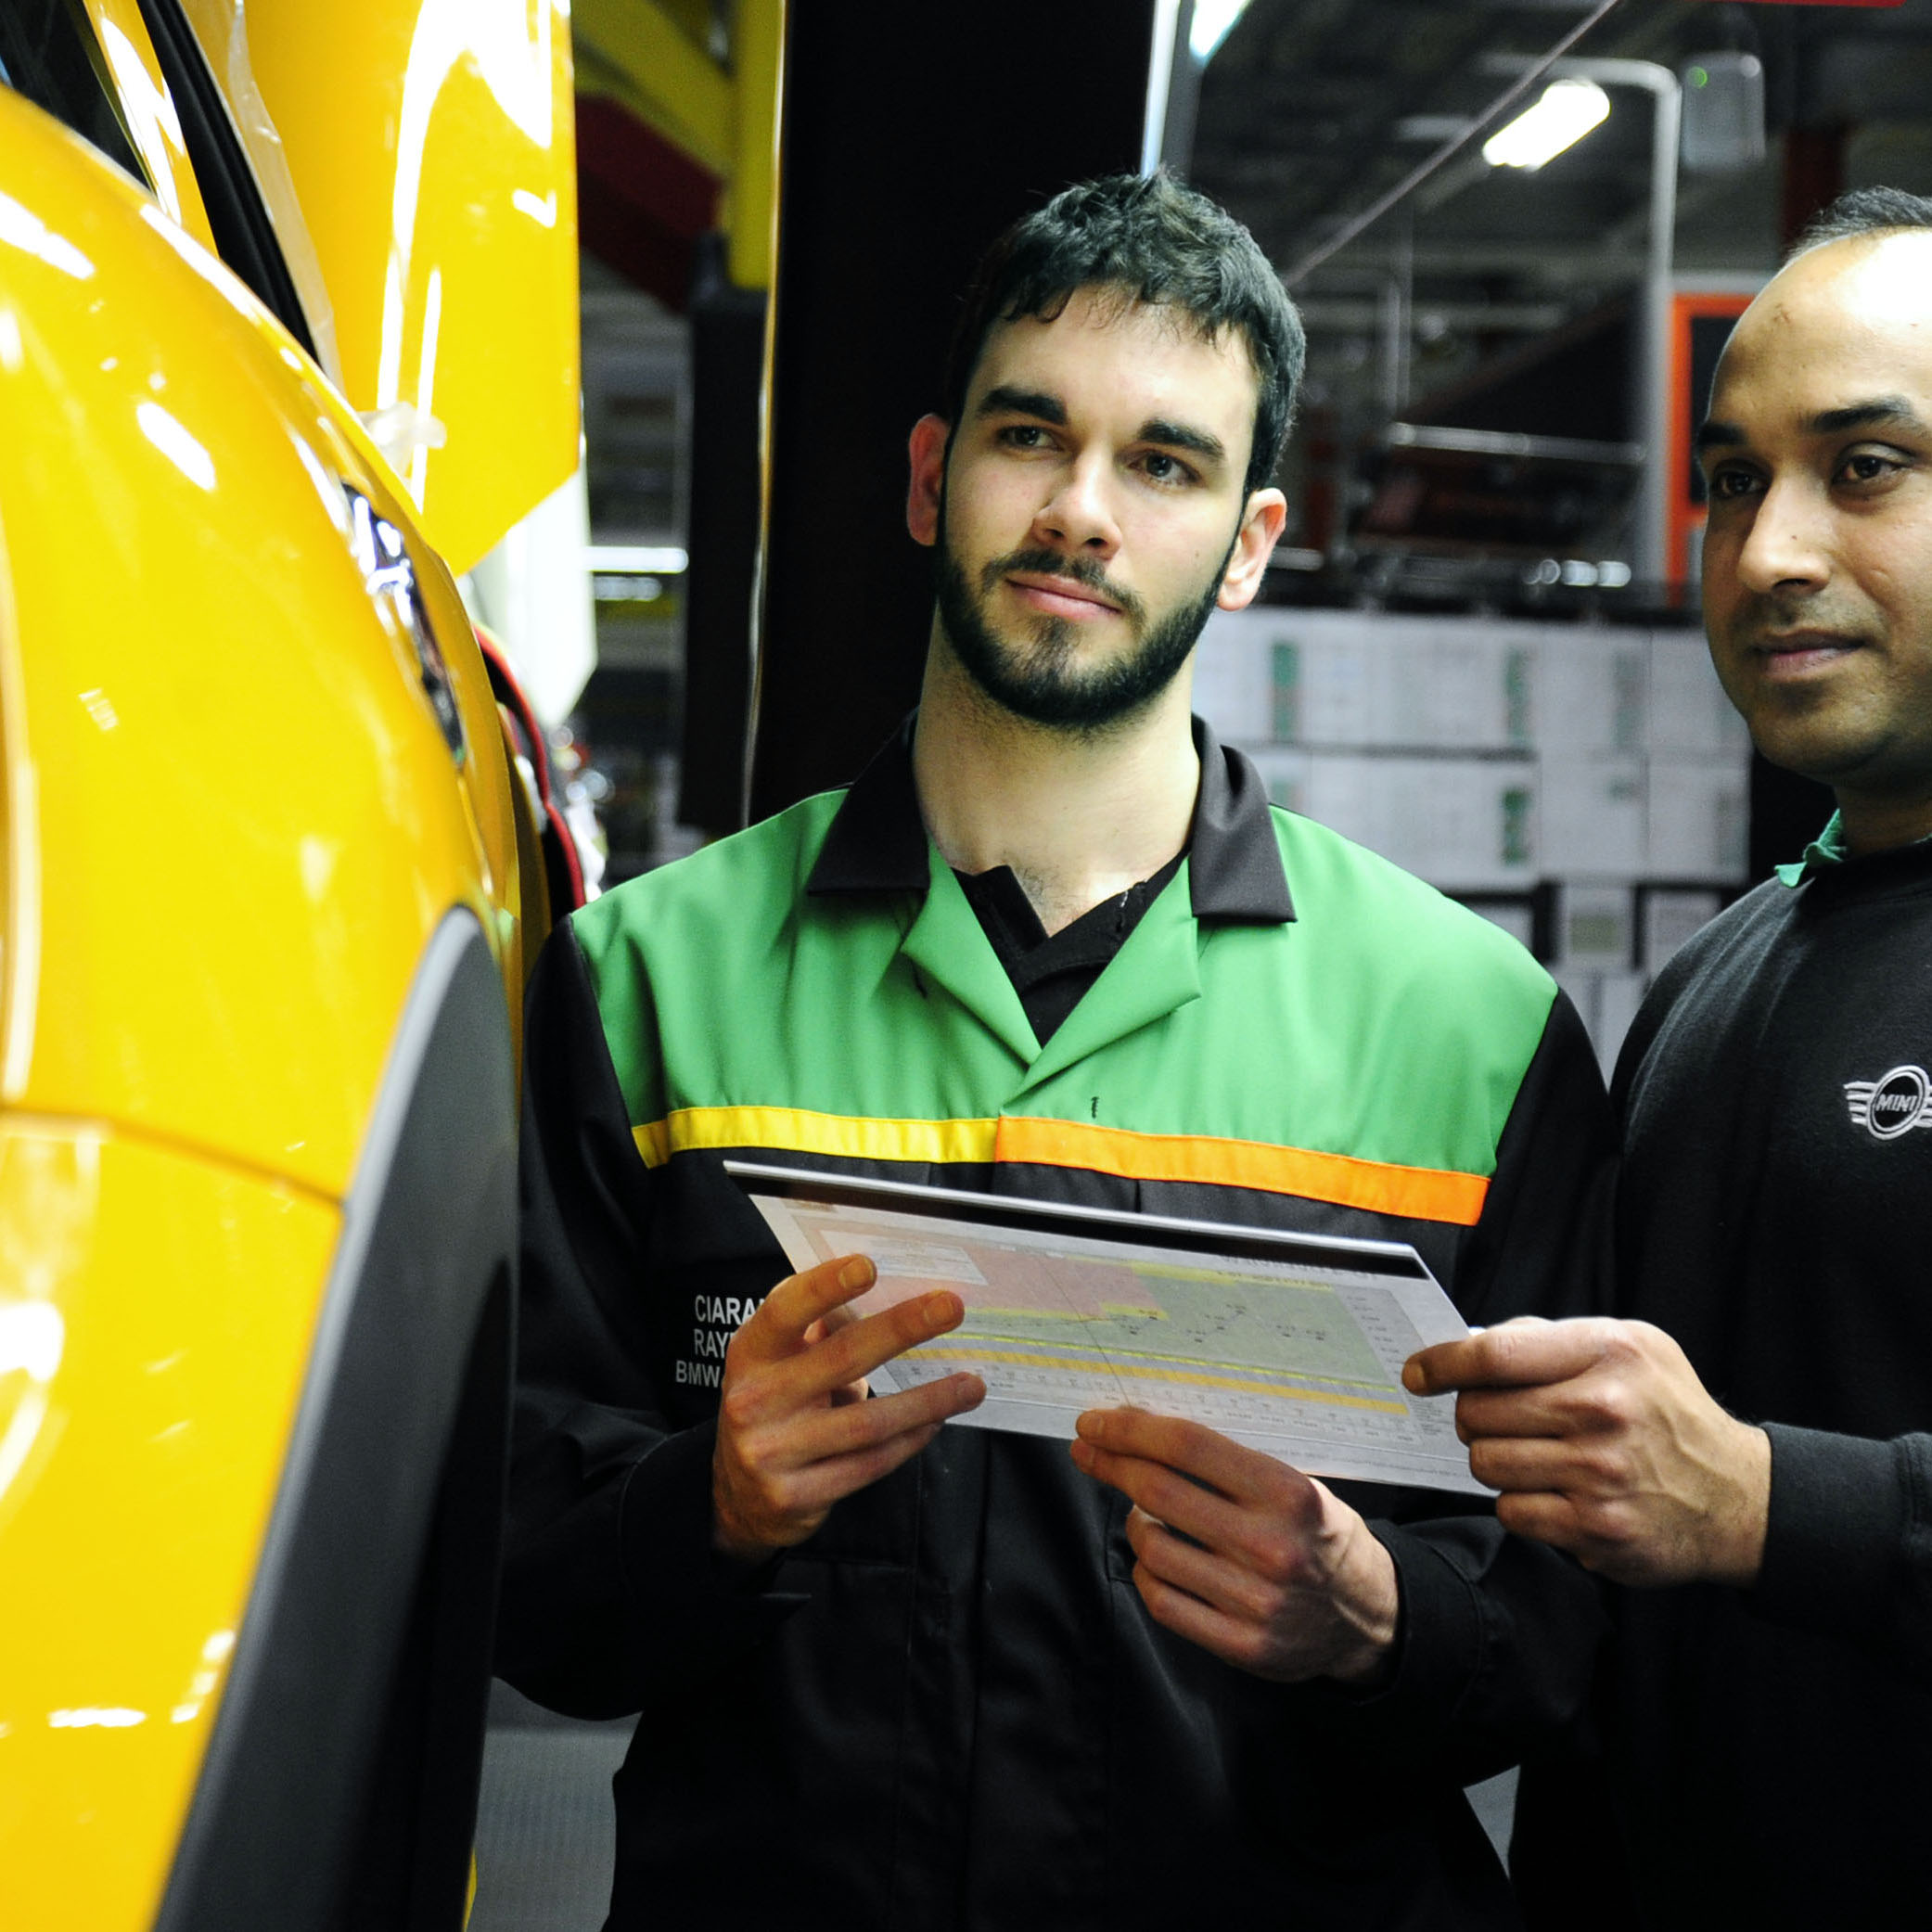 Automotive education, training and skills